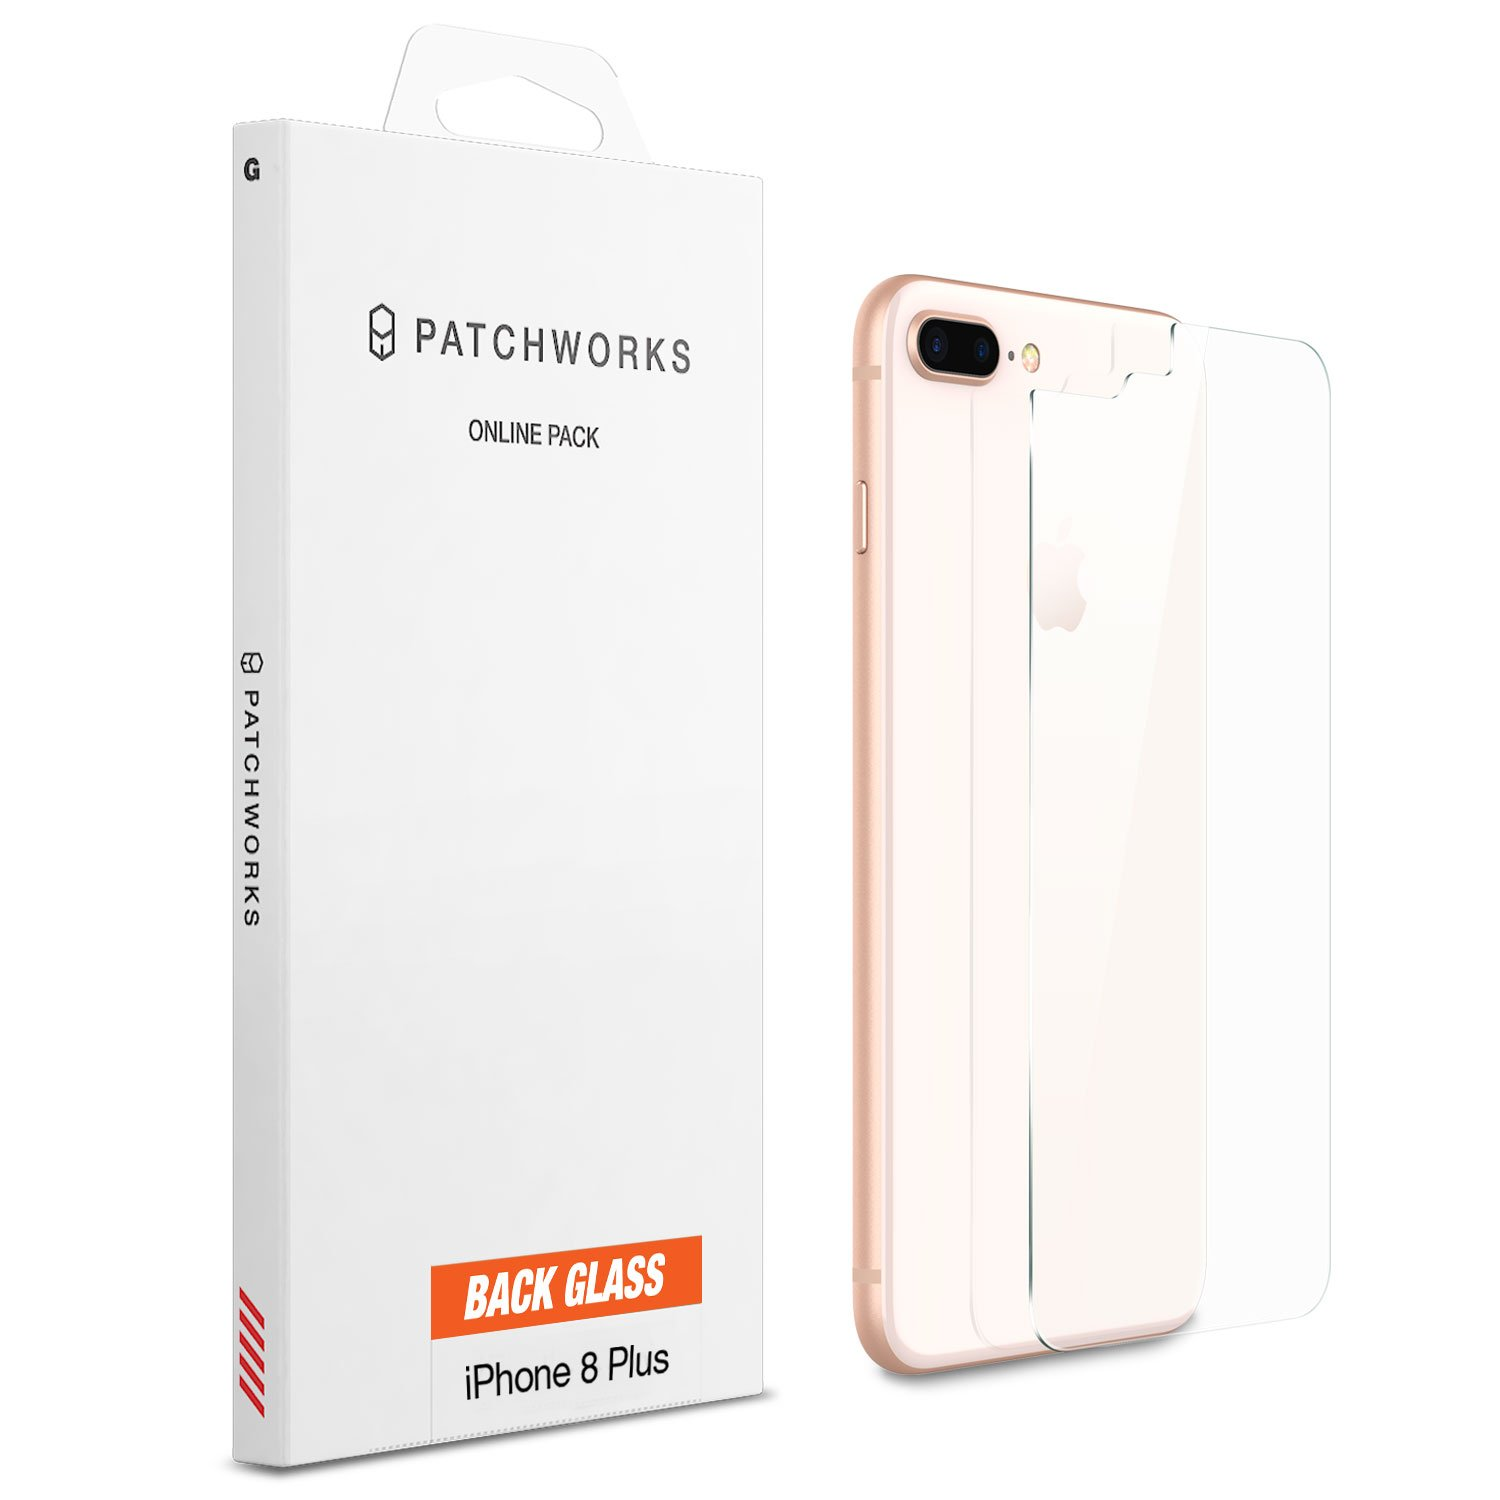 iPhone 8 Plus Screen Protector, Patchworks ITG 9H Rear Back Glass Made in Japan Maximum Strength Anti, Scratch Anti, Fingerprint Oleophobic Coated Tempered Glass Screen Protector for iPhone 8 Plus